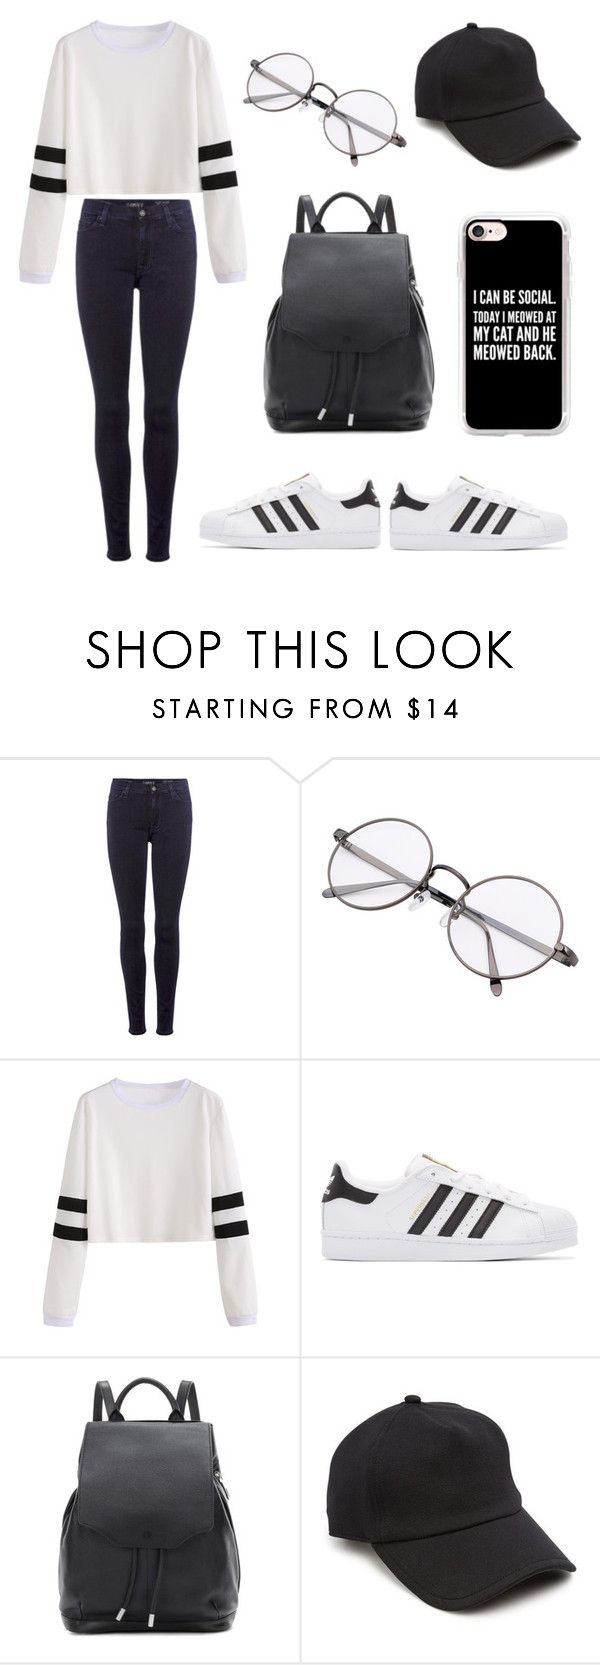 Casual Black and White by jungkookiez on Polyvore featuring 7 For All Mankind, adidas Originals, rag & bone and Casetify